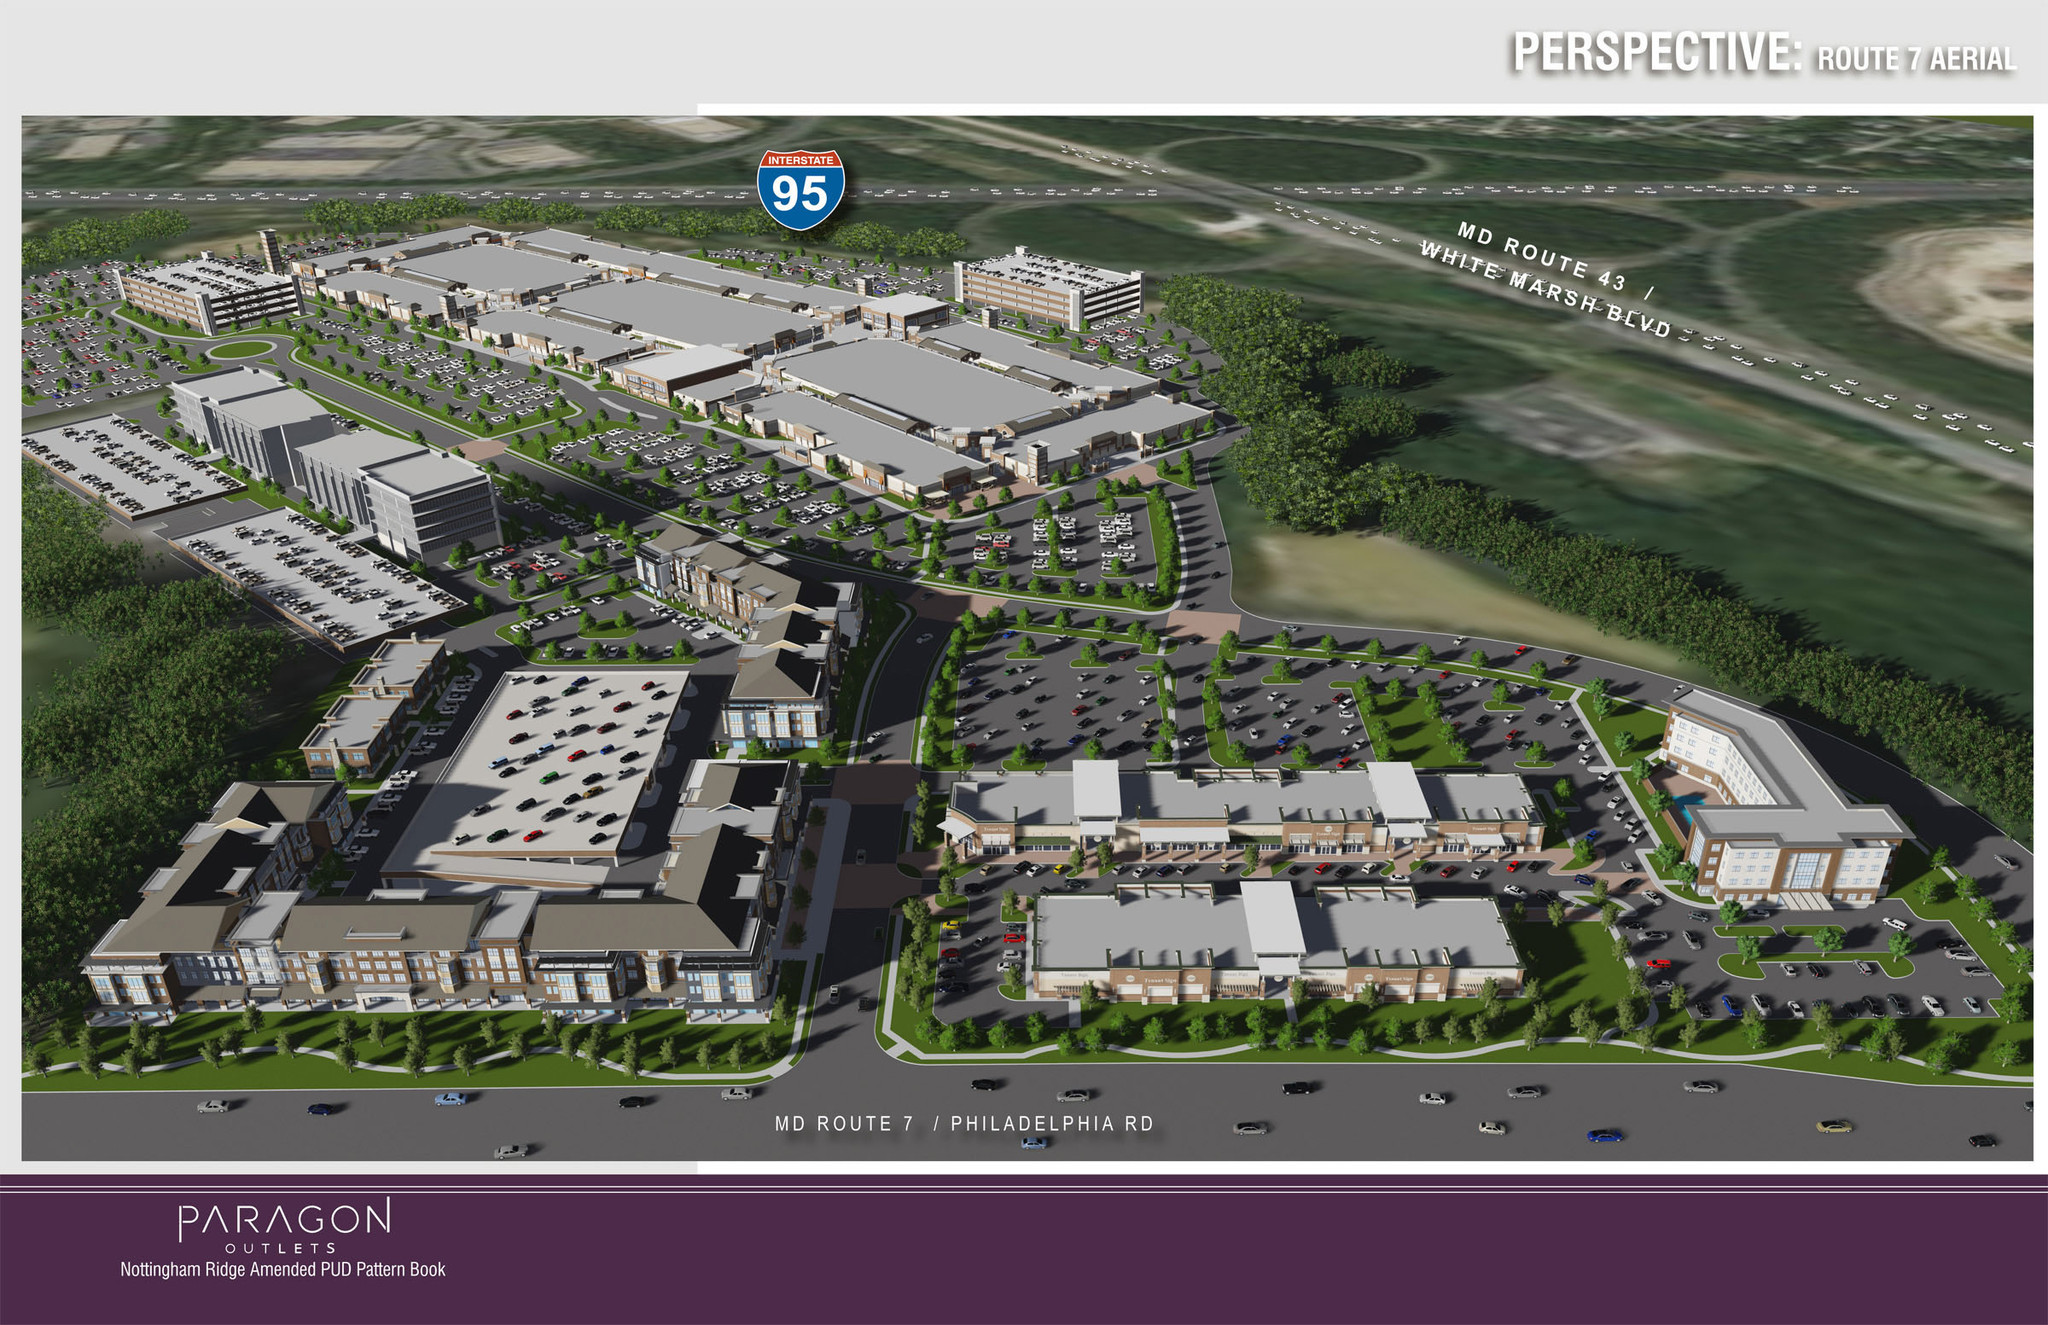 Proposed White Marsh Outlet Mall Gets OK Baltimore Sun - Philadelphia outlets map